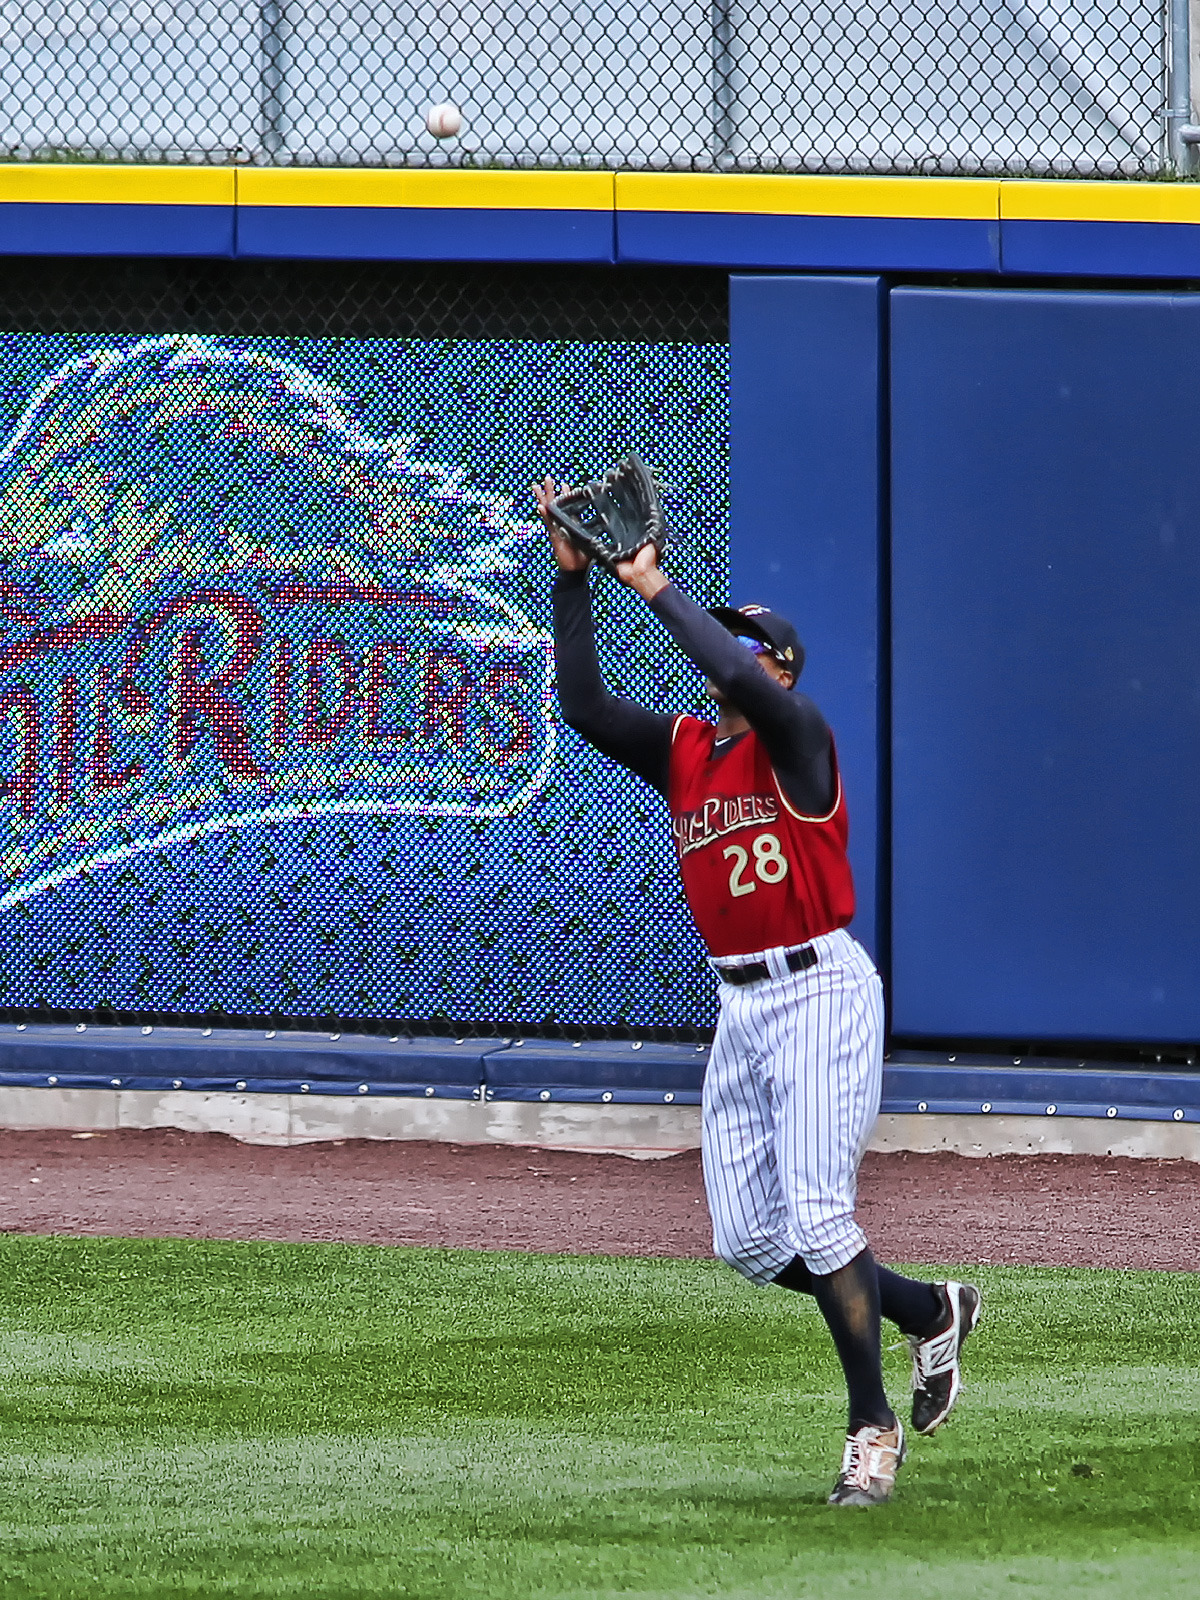 Curtis Granderson May 12, 2013 - Curtis Granderson catches a fly ball. He was on rehab assignment with the AAA Scranton/Wilkes-Barre RailRiders.